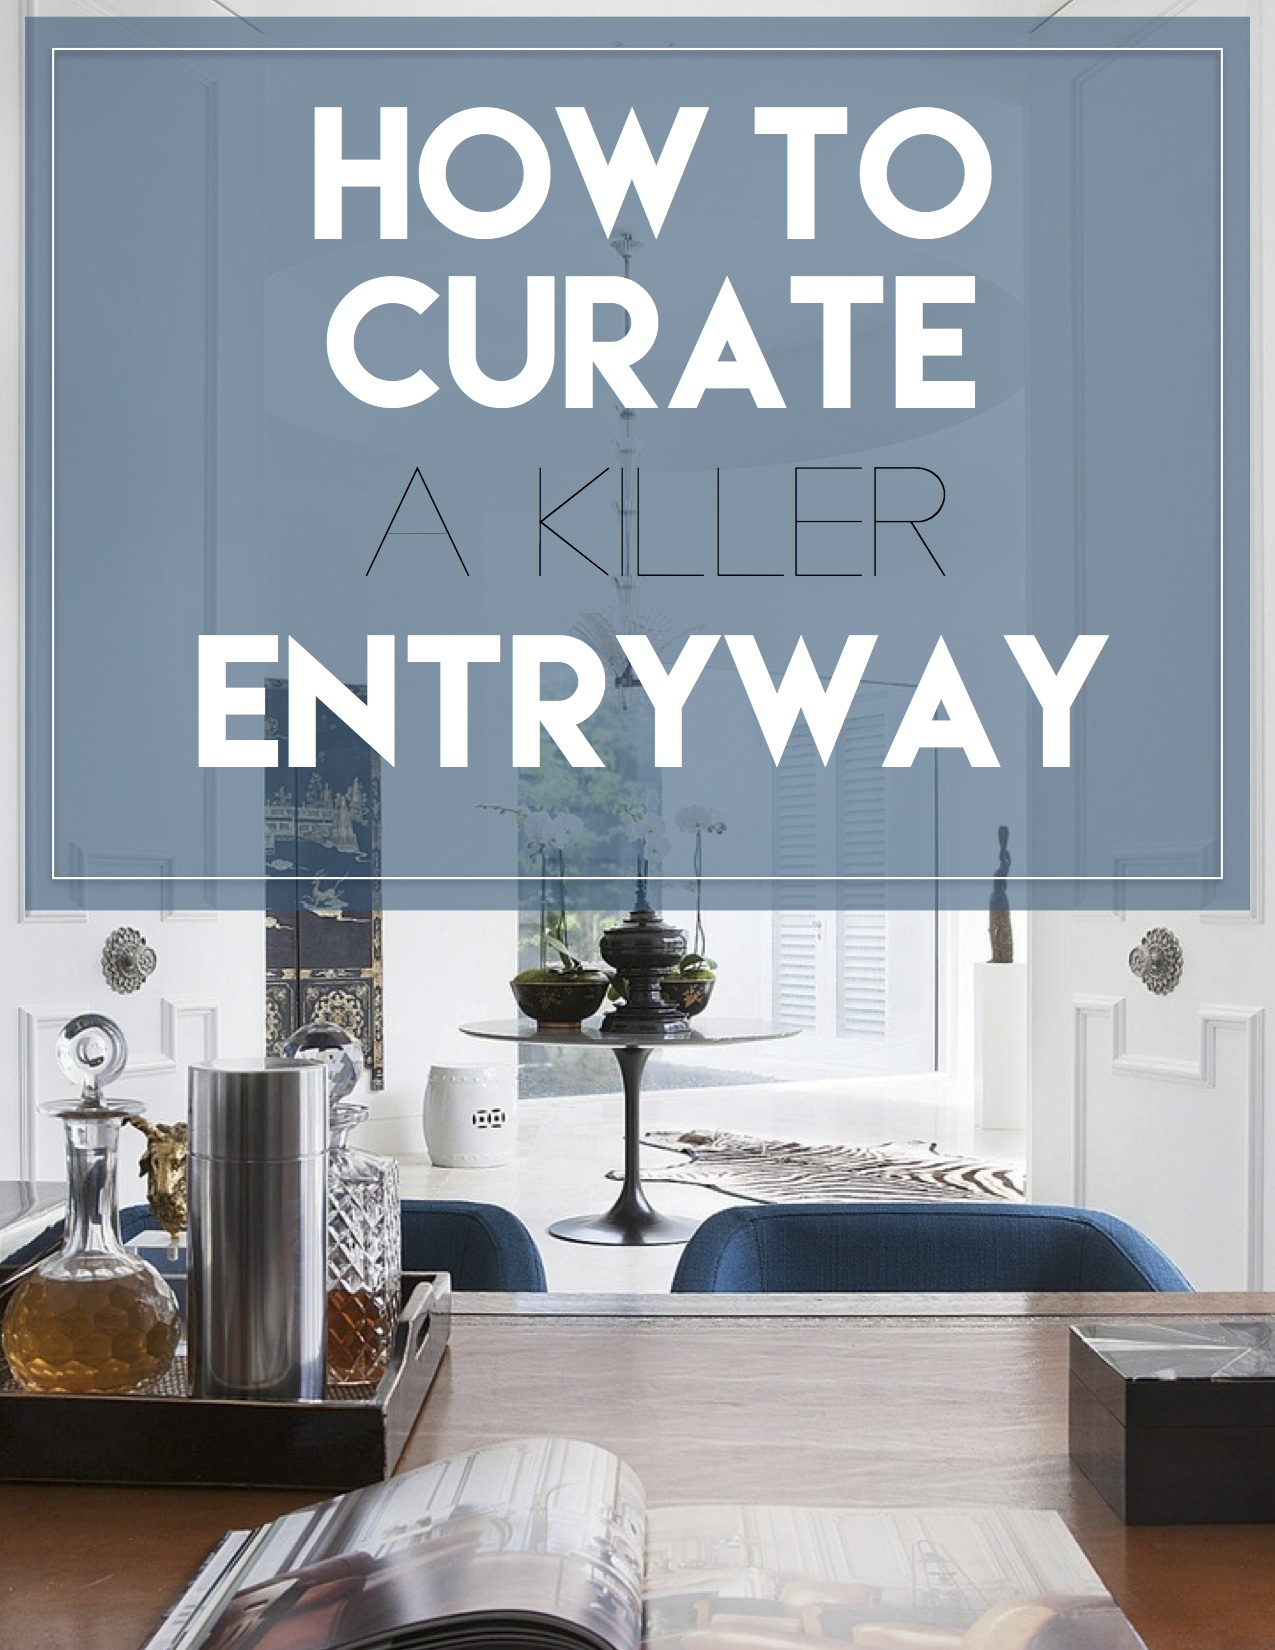 How to curate an entryway like david hicks